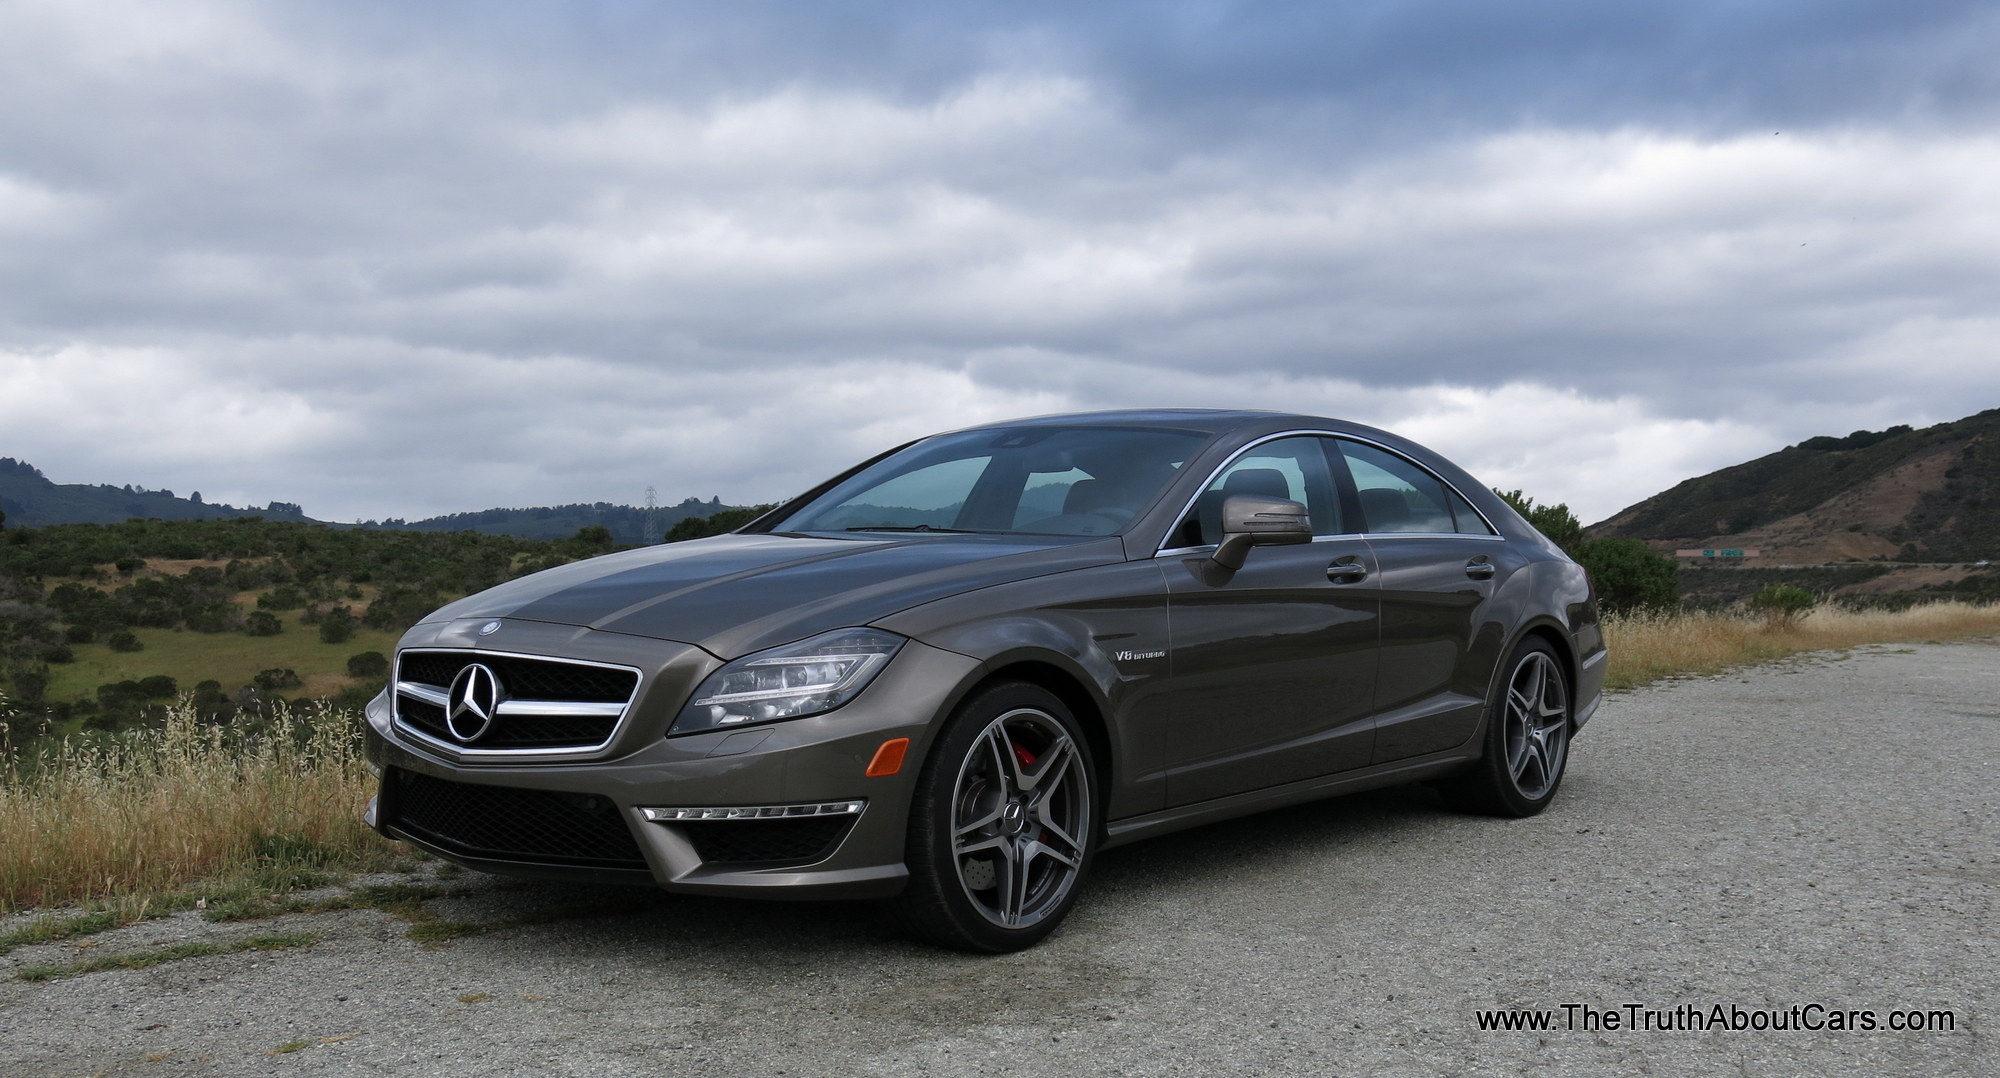 Matte Black Luxury Car Wallpaper Review 2013 Mercedes Benz Cls63 Amg Video The Truth